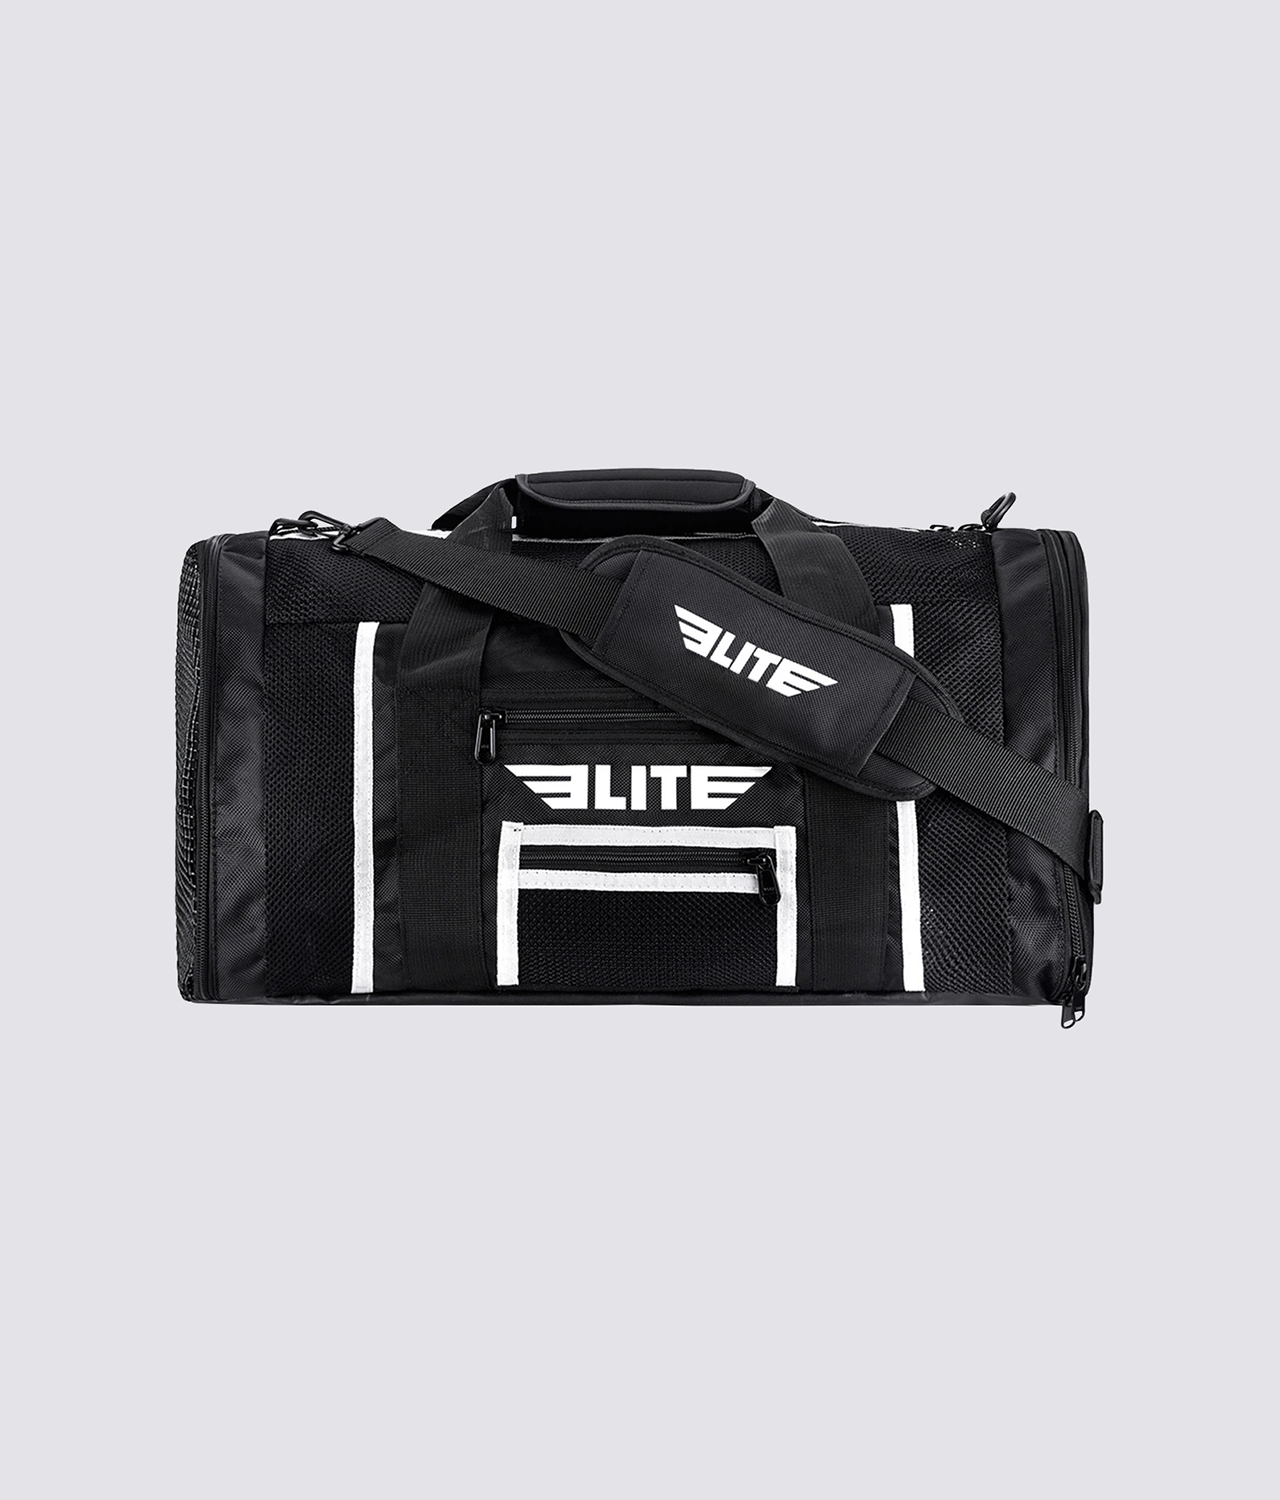 Elite Sports Mesh Black Medium Muay Thai Gear Gym Bag